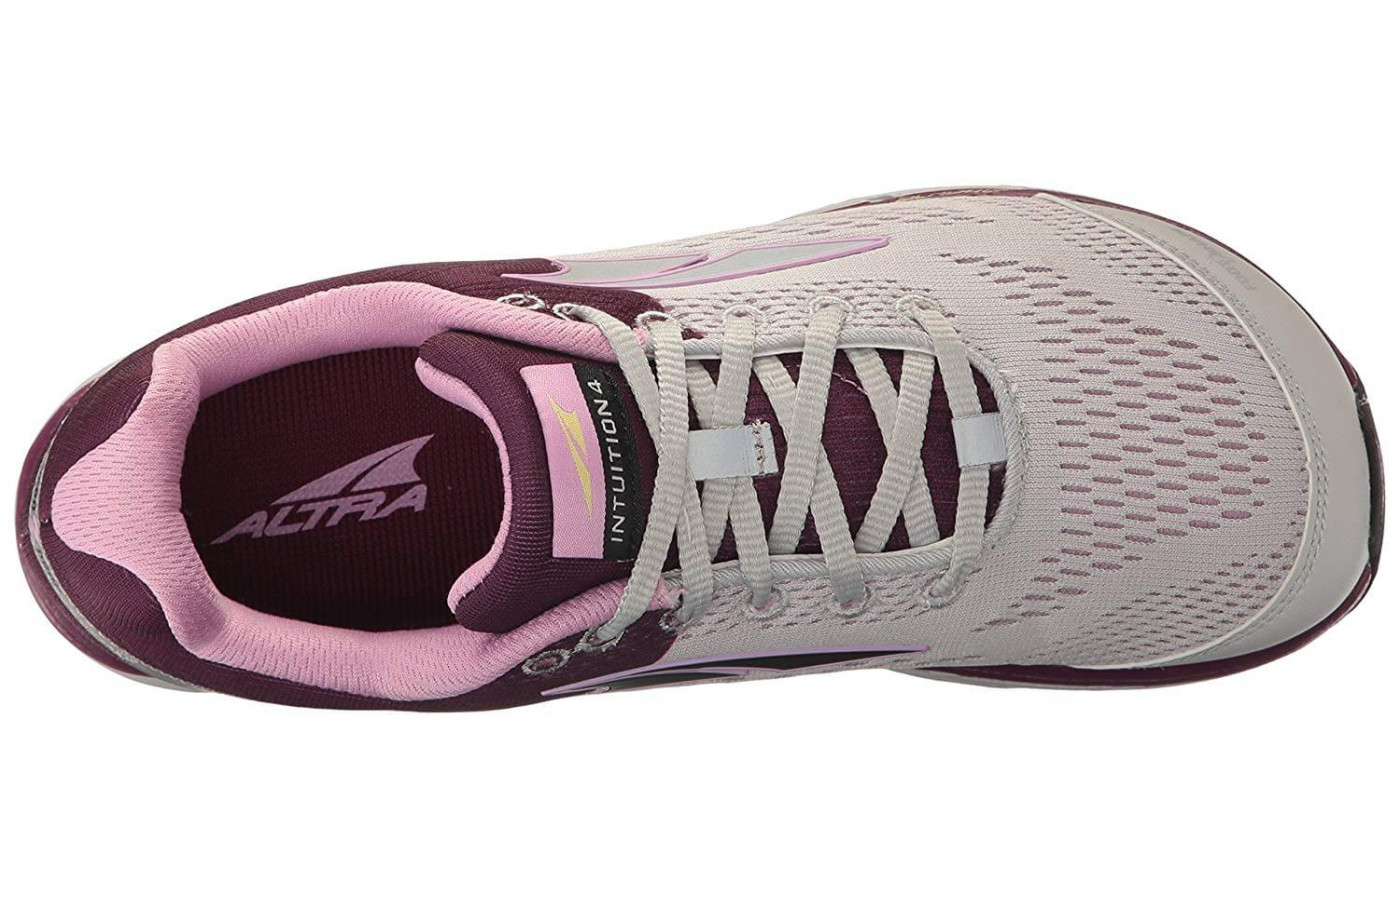 A top view of the Altra Intuition 4.